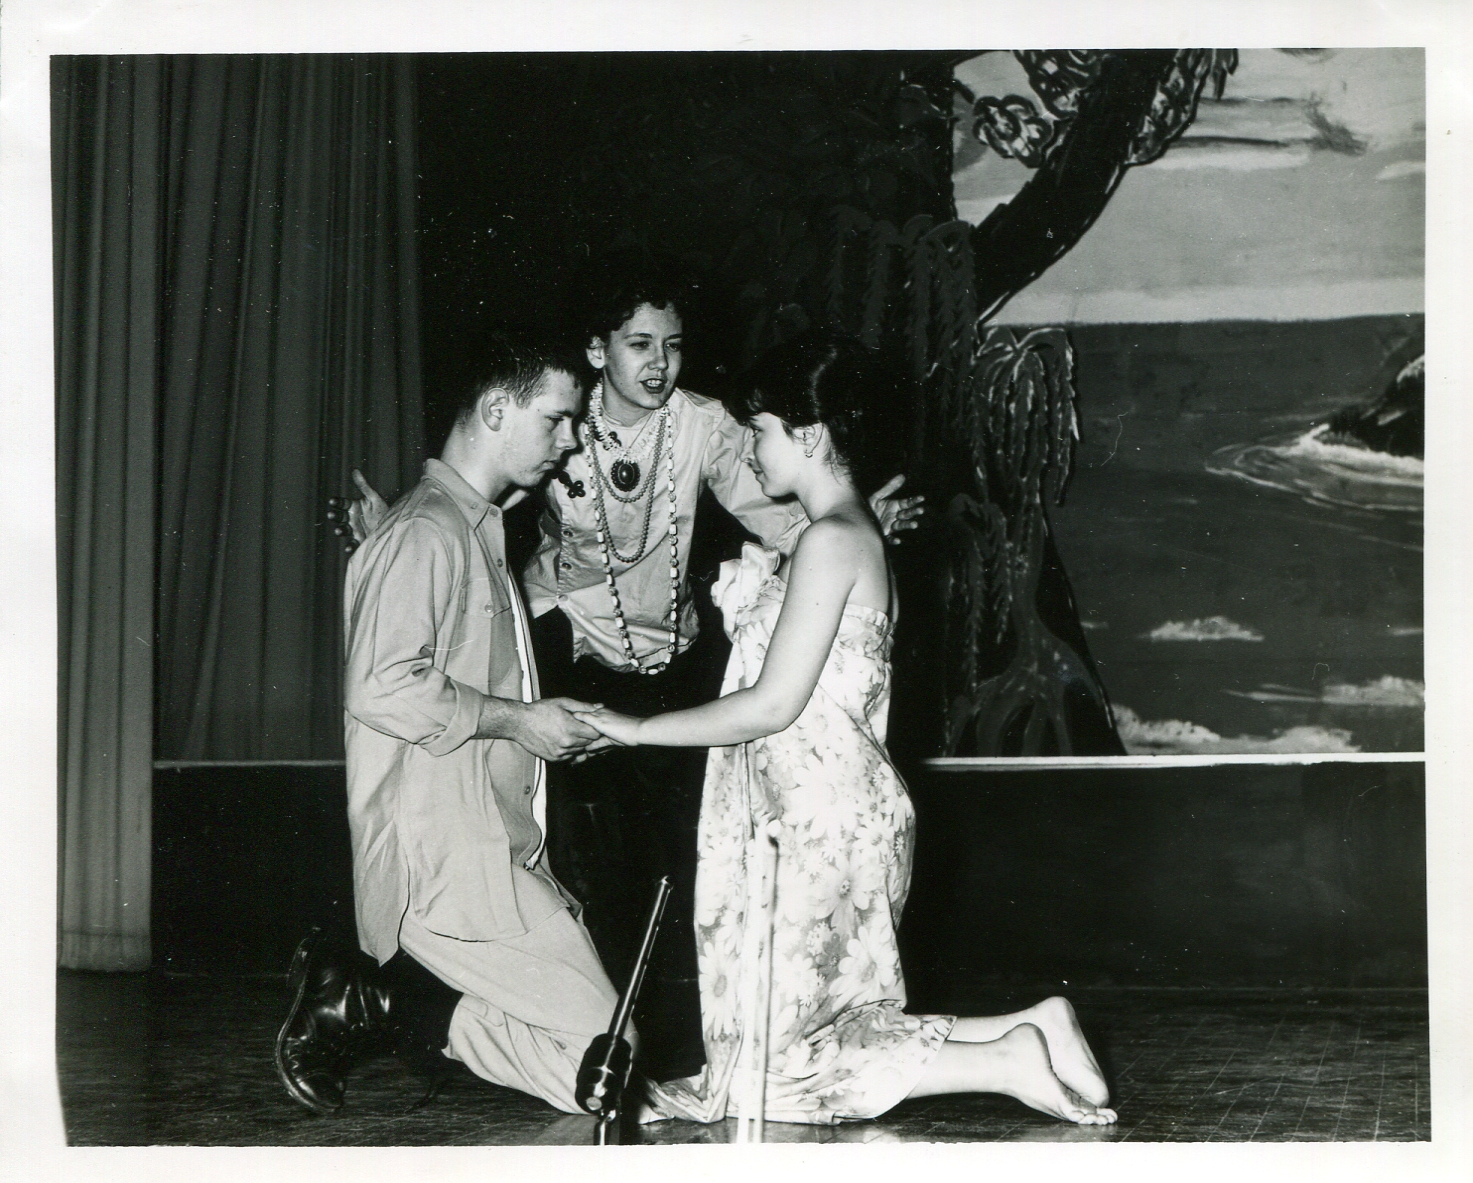 Dianne_SouthPacific_003.jpg